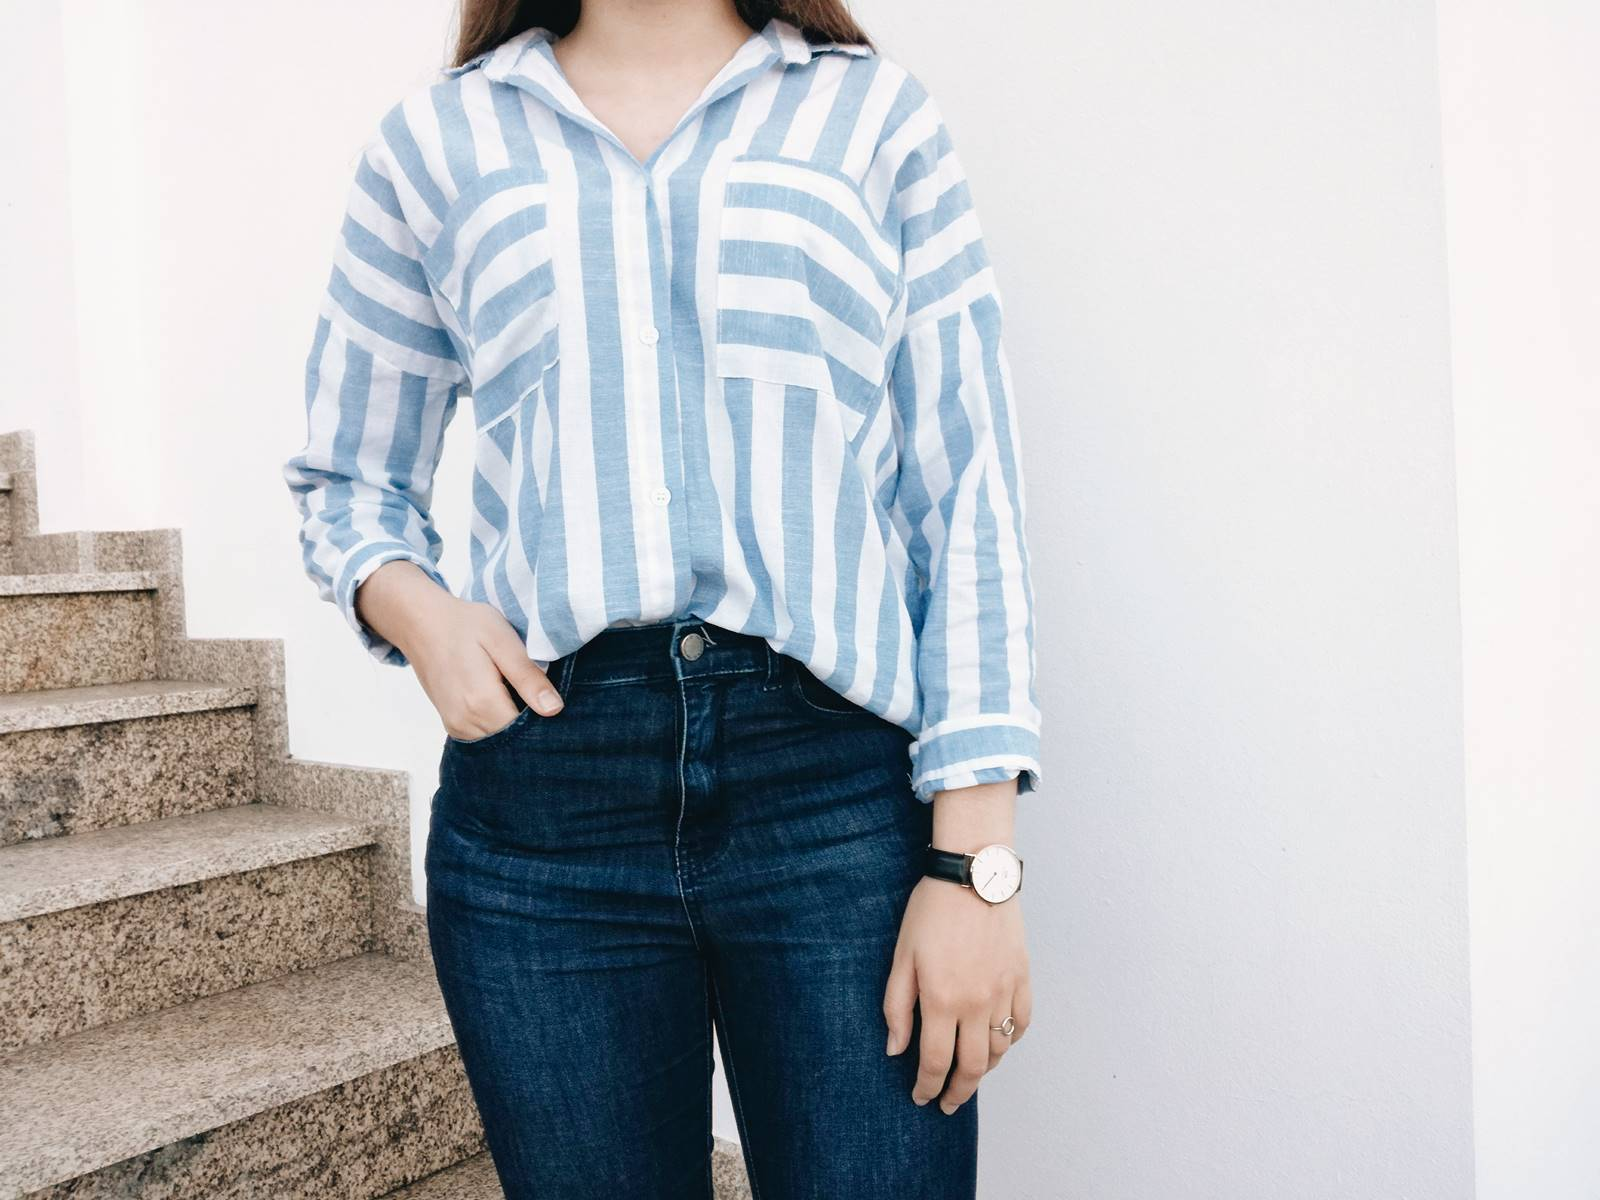 OOTD | SHIRT FROM ROMWE